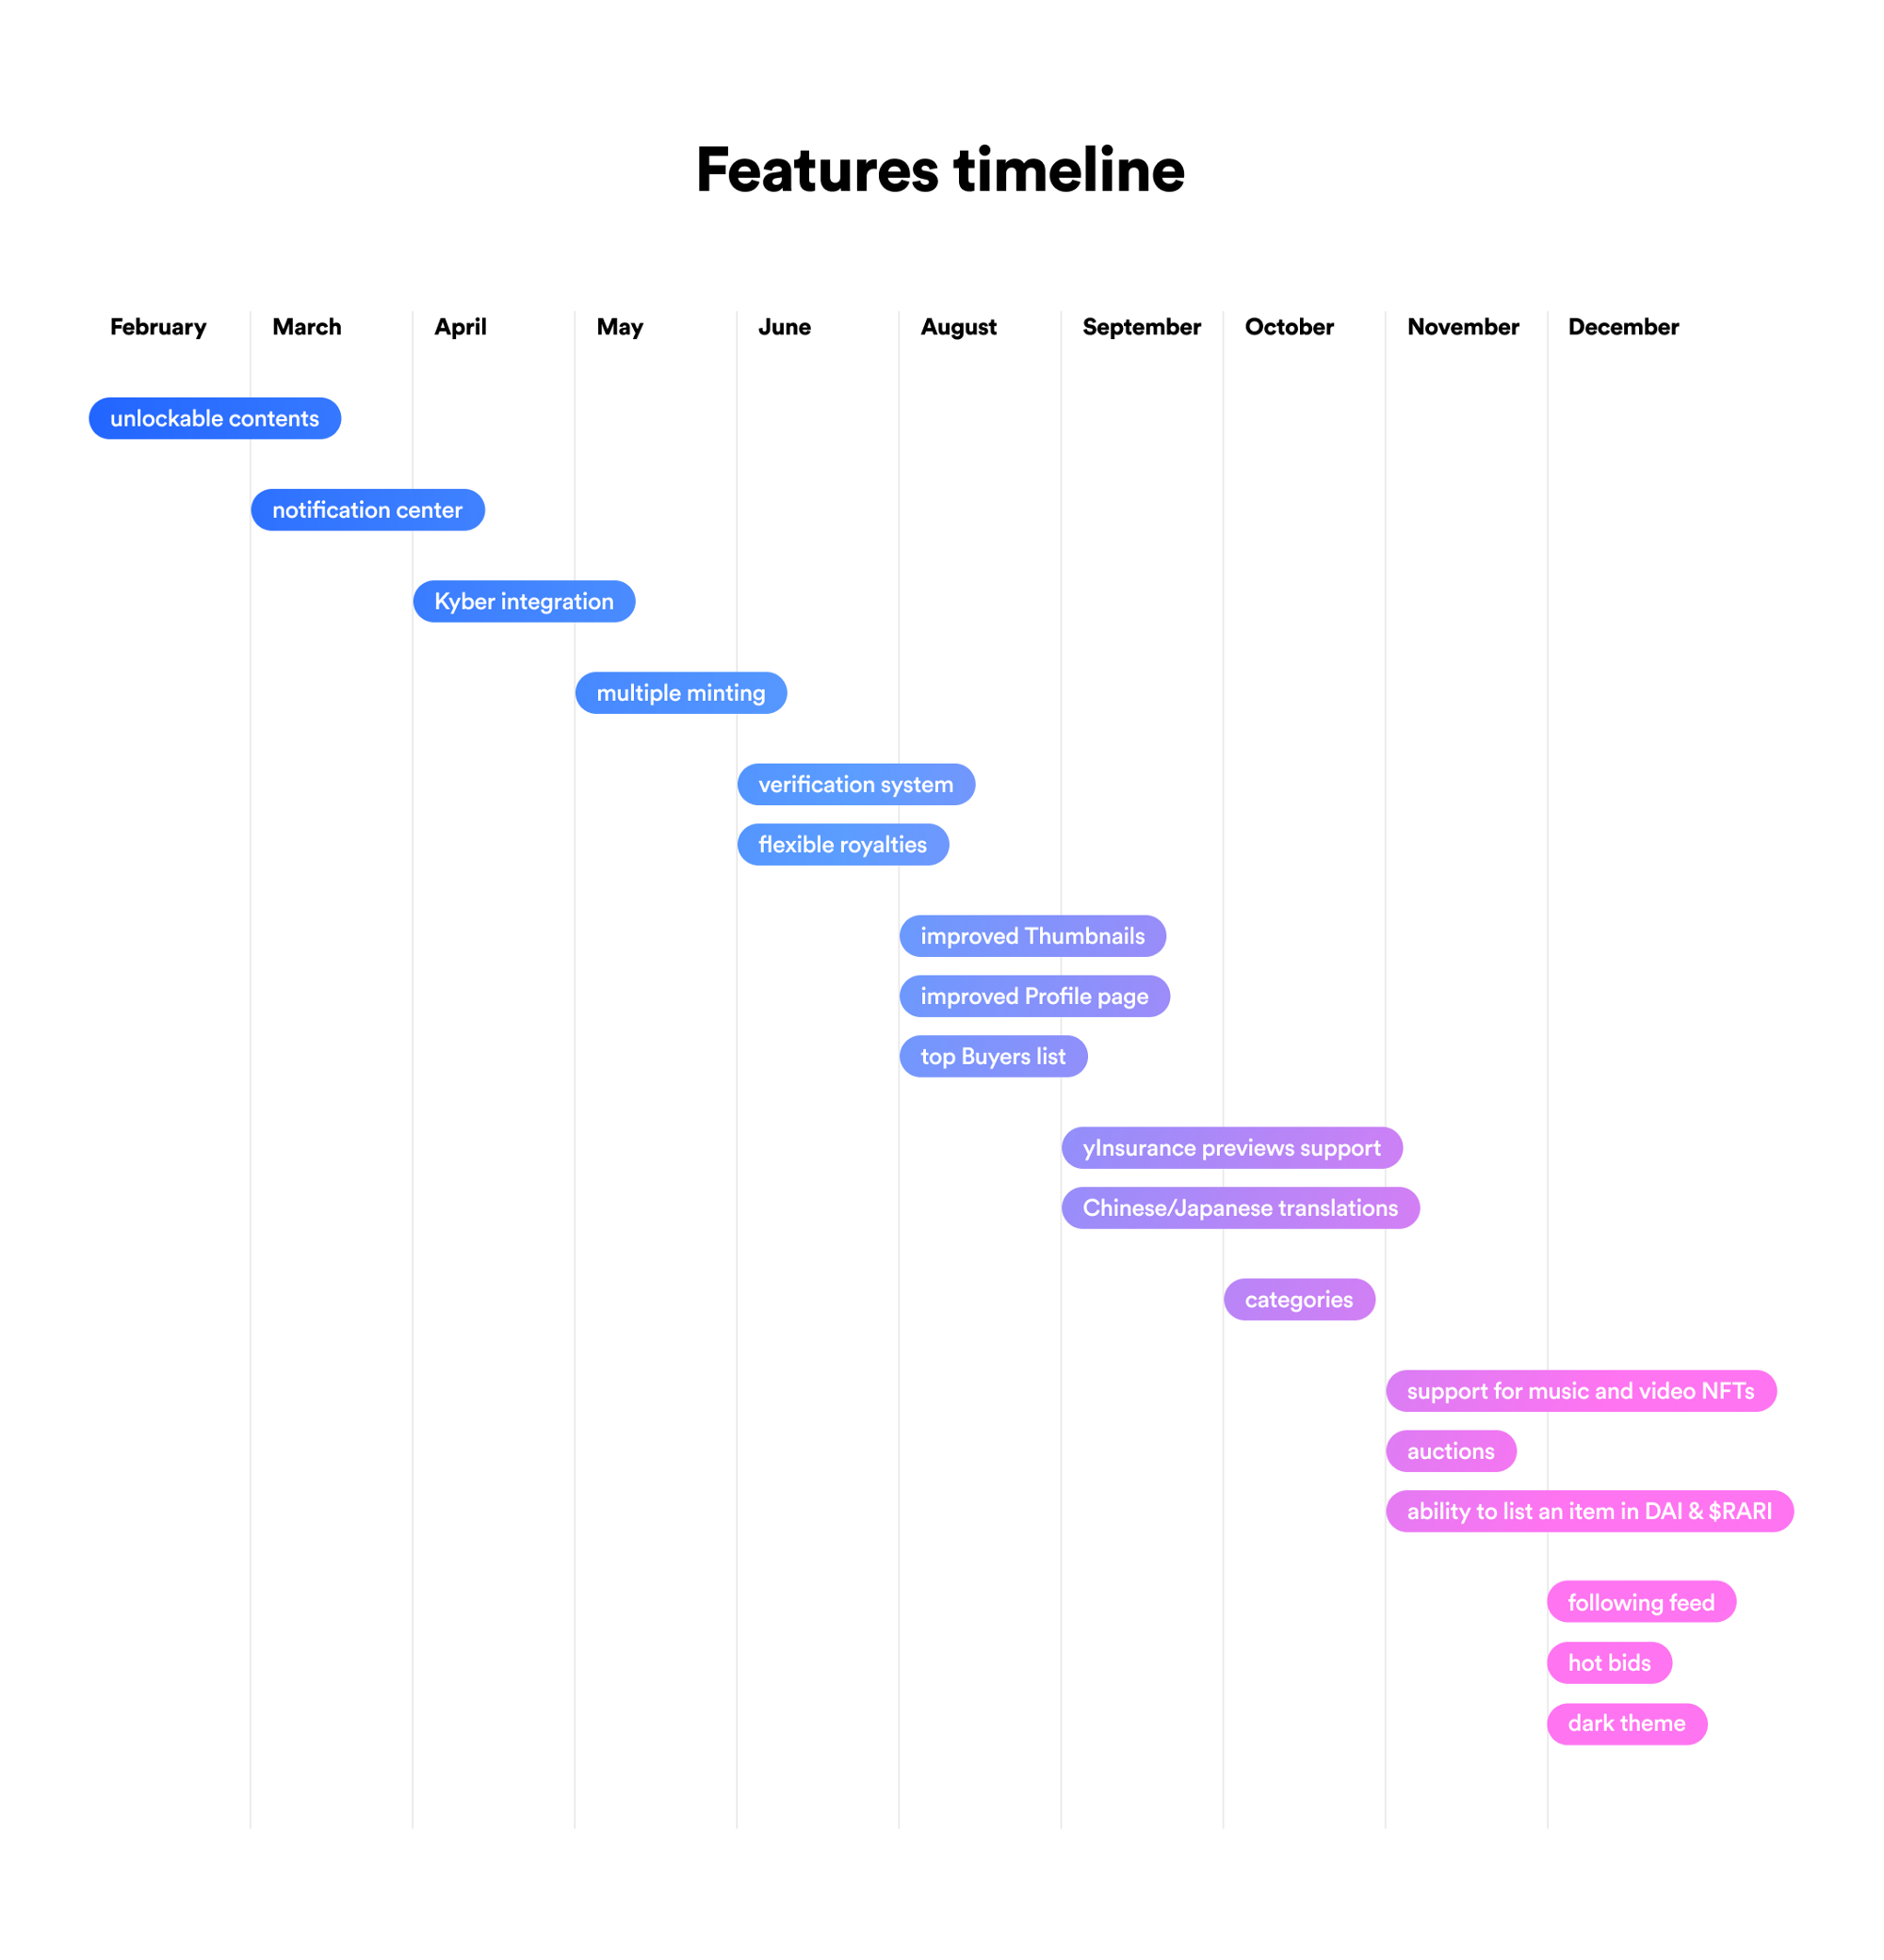 Features timeline